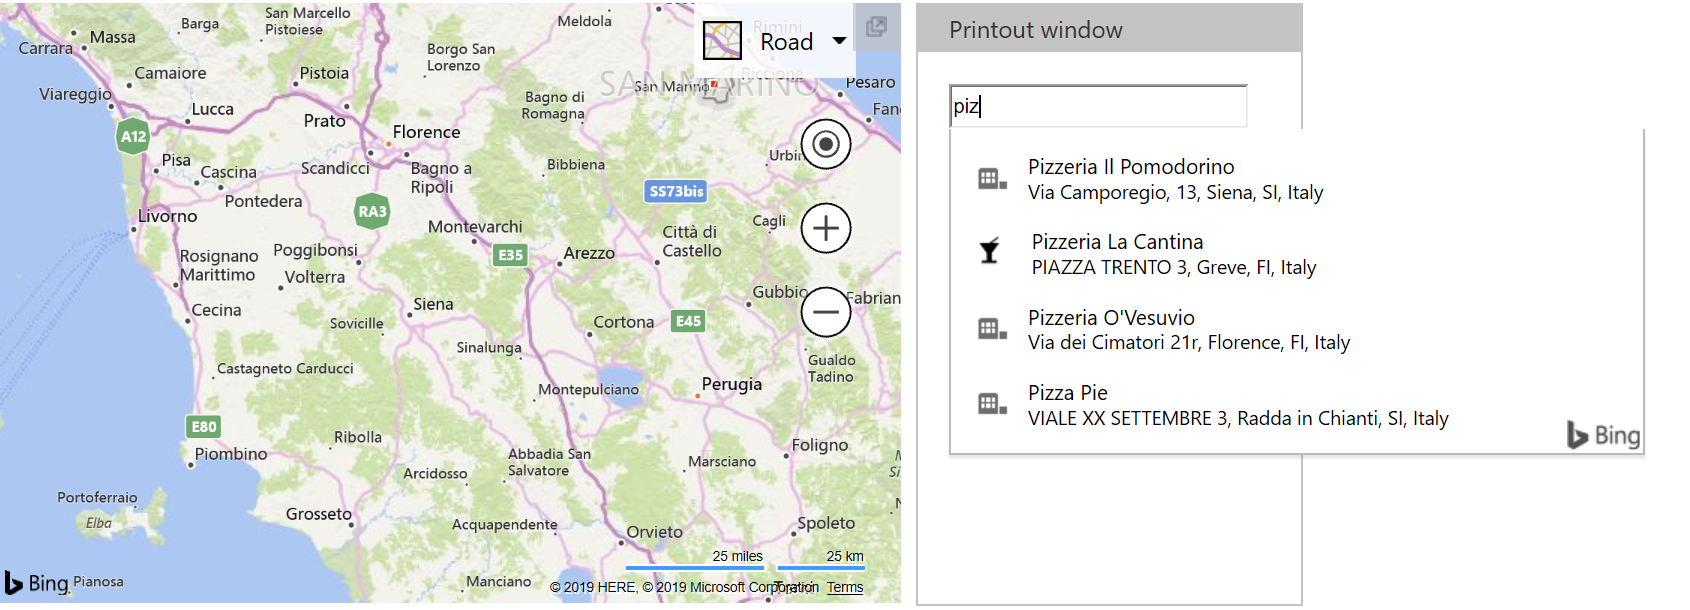 Bing Maps Autosuggest - Italy